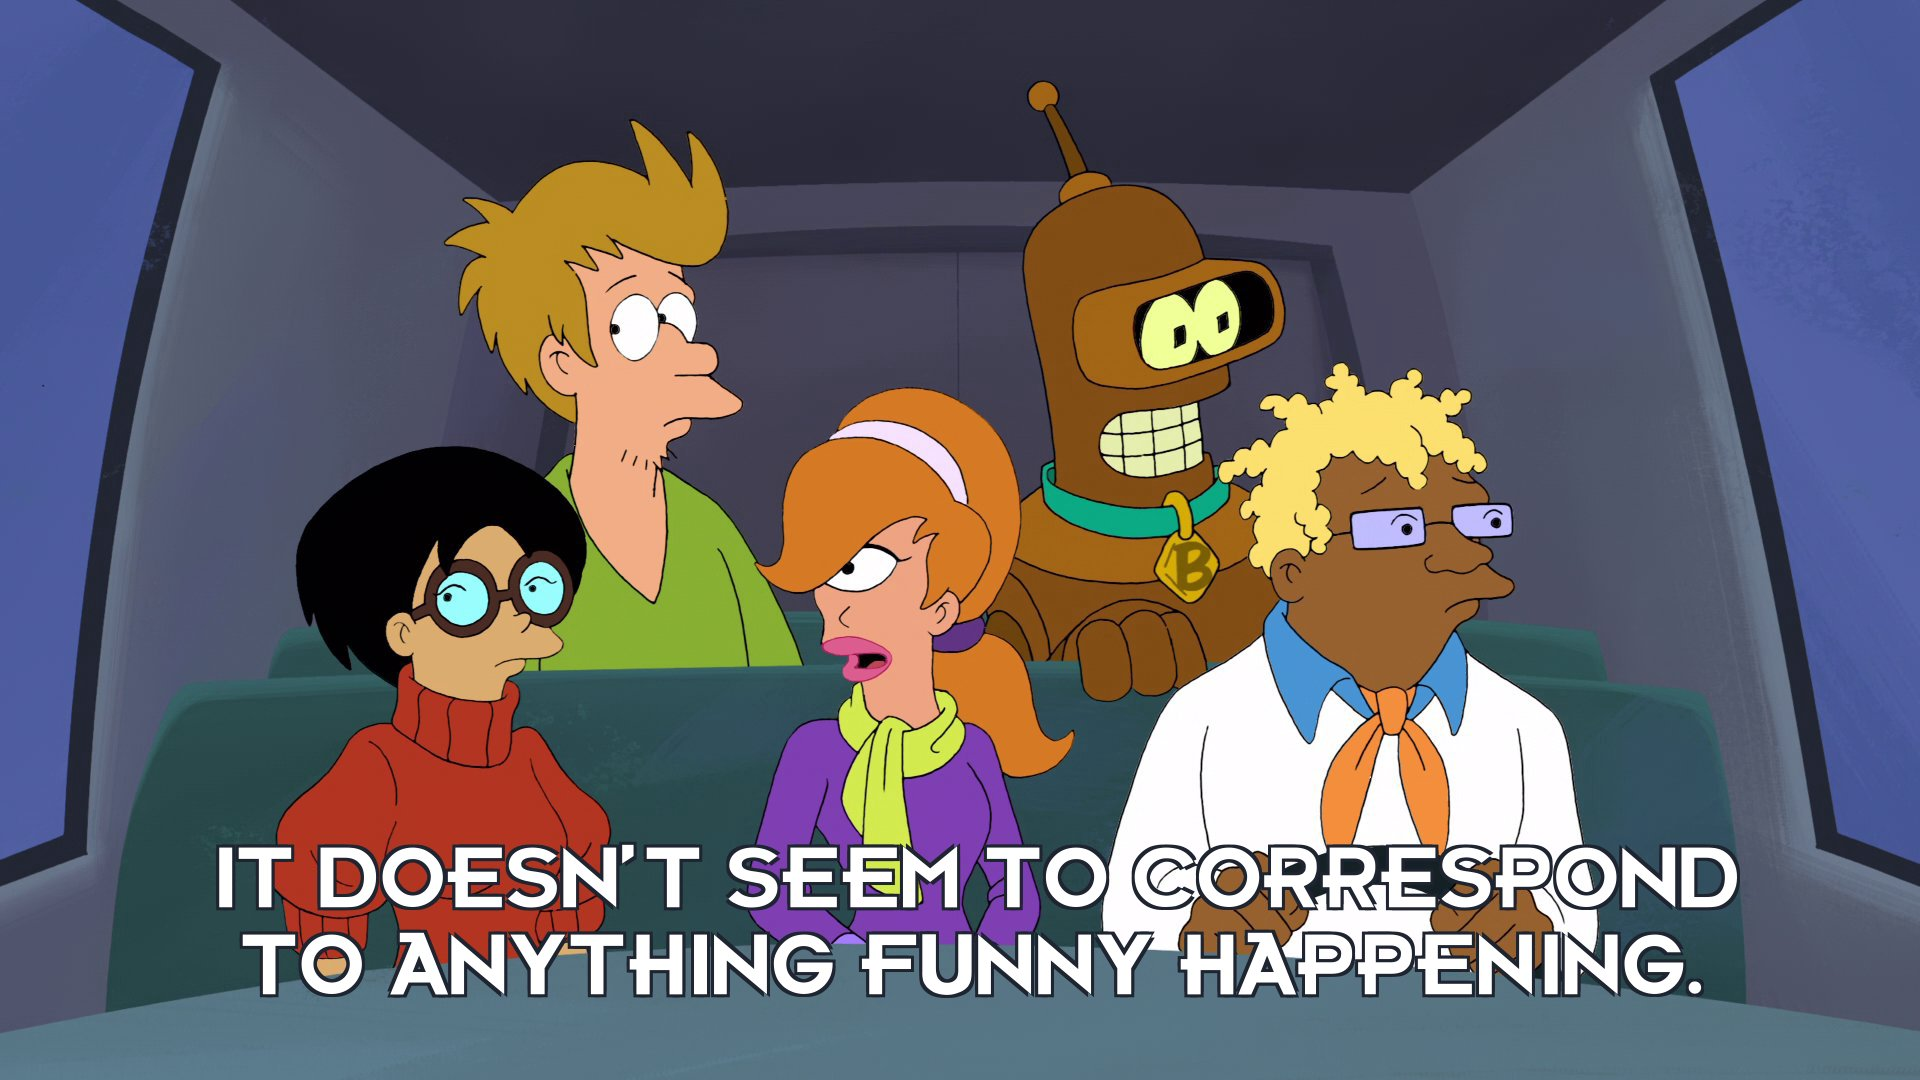 Turanga Daphne: It doesn't seem to correspond to anything funny happening.